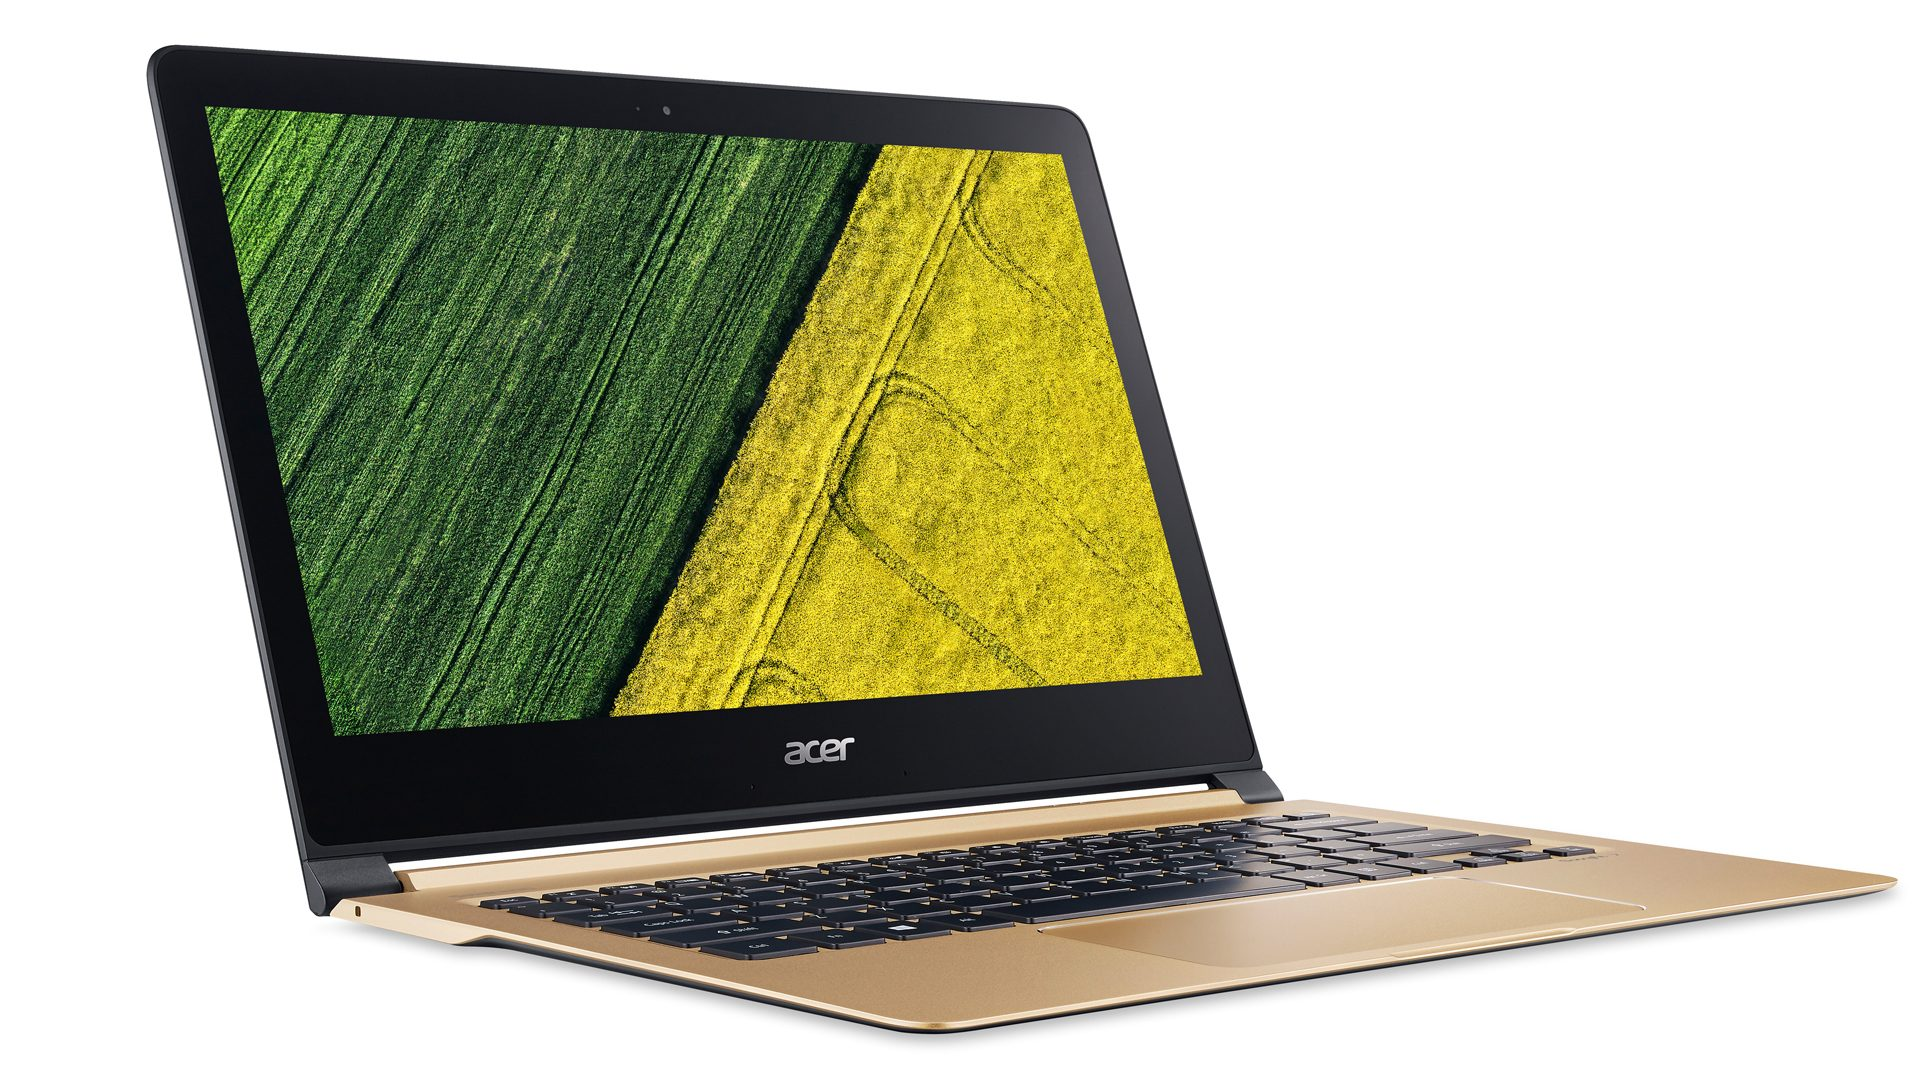 acer_swift7-ansichten_7